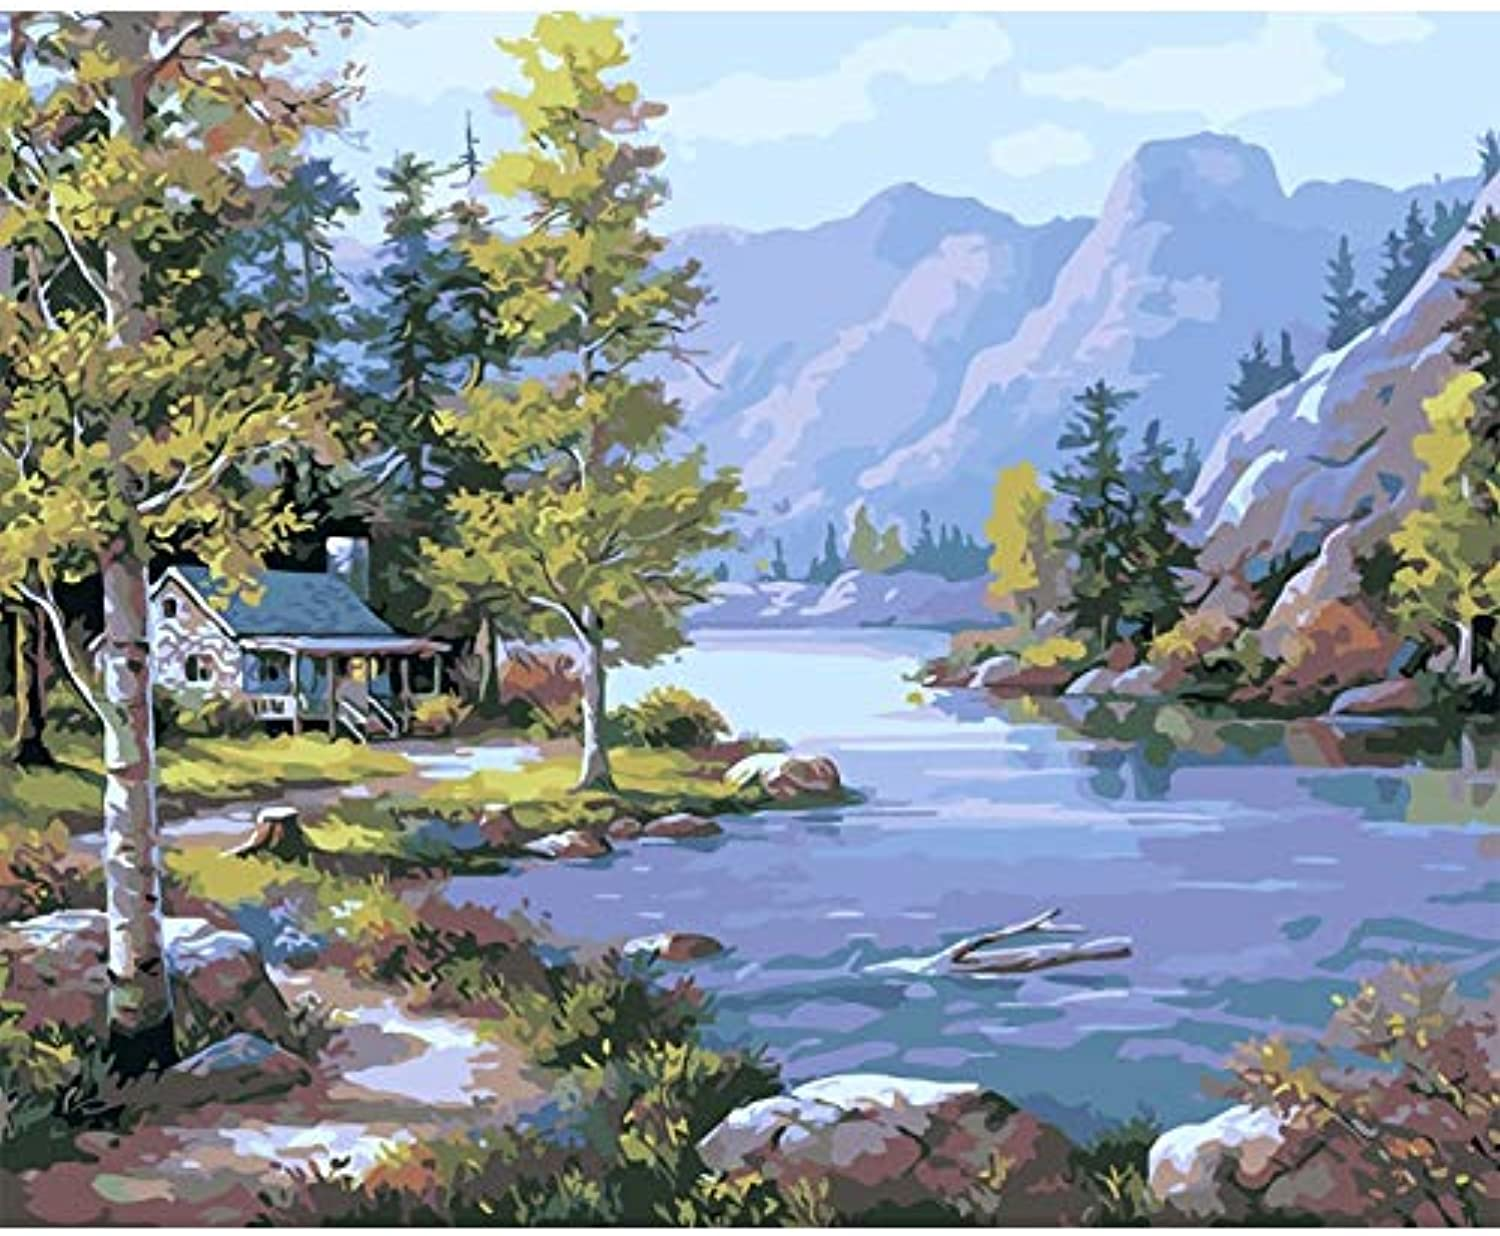 Tuwba Paint by Numbers Adult Kit Riverside Cottage Scenery Beginner Acrylic On Canvas,Framed 40X50Cm